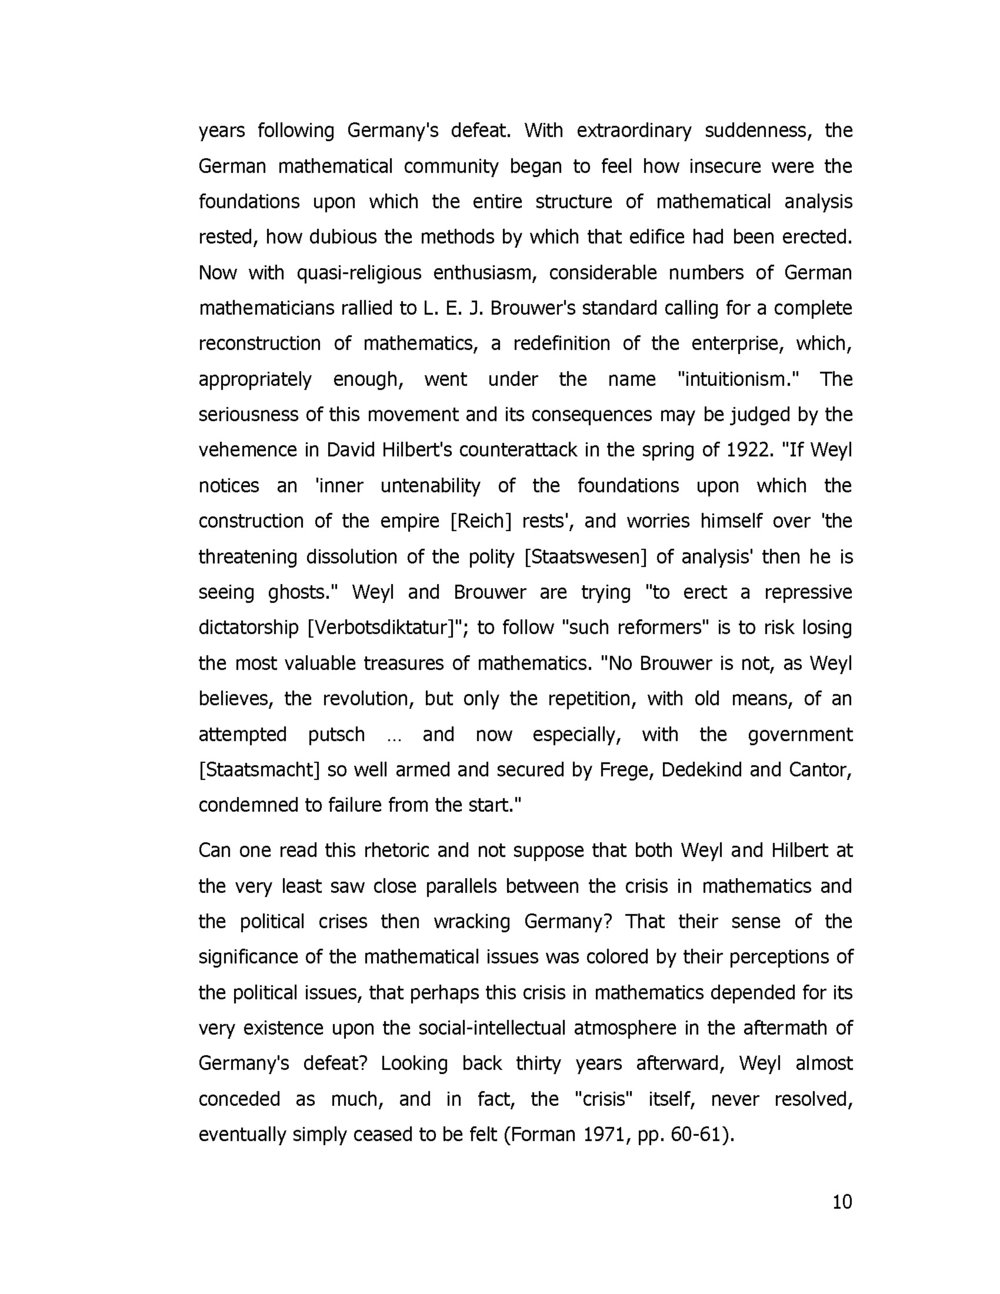 Timpilis, Dimitris (2011) Social and Cultural Approaches to the New Crisis in the Foundations of Mathematics, L. E. J. Brouwer's Free Will versus Leibniz's Dream_Page_11.jpg